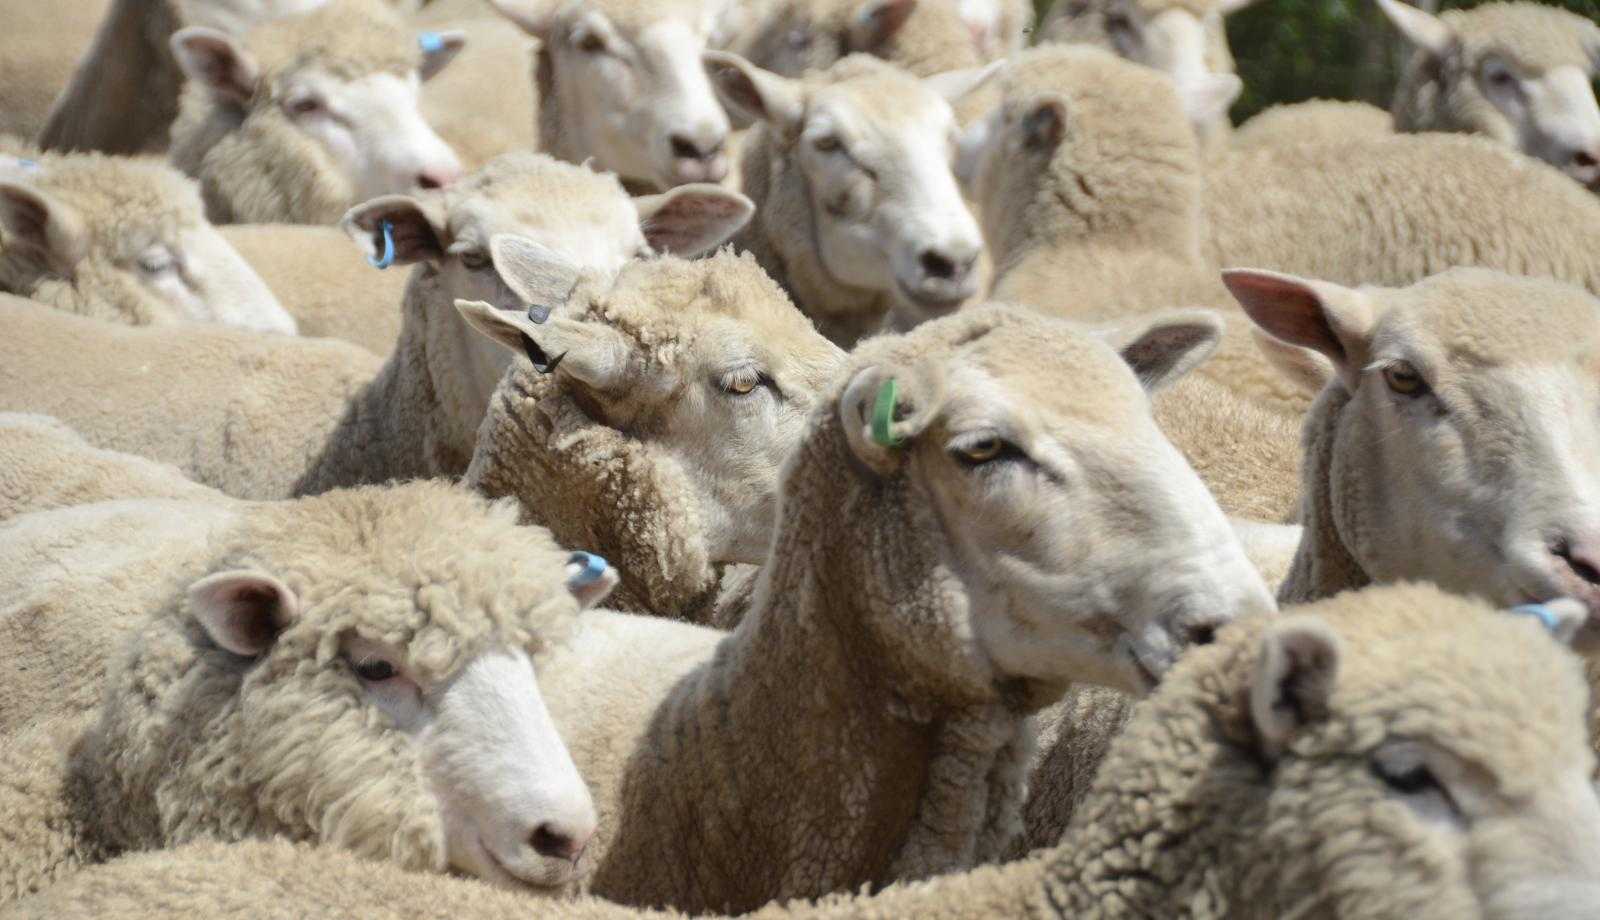 Calling for young sheep breeders